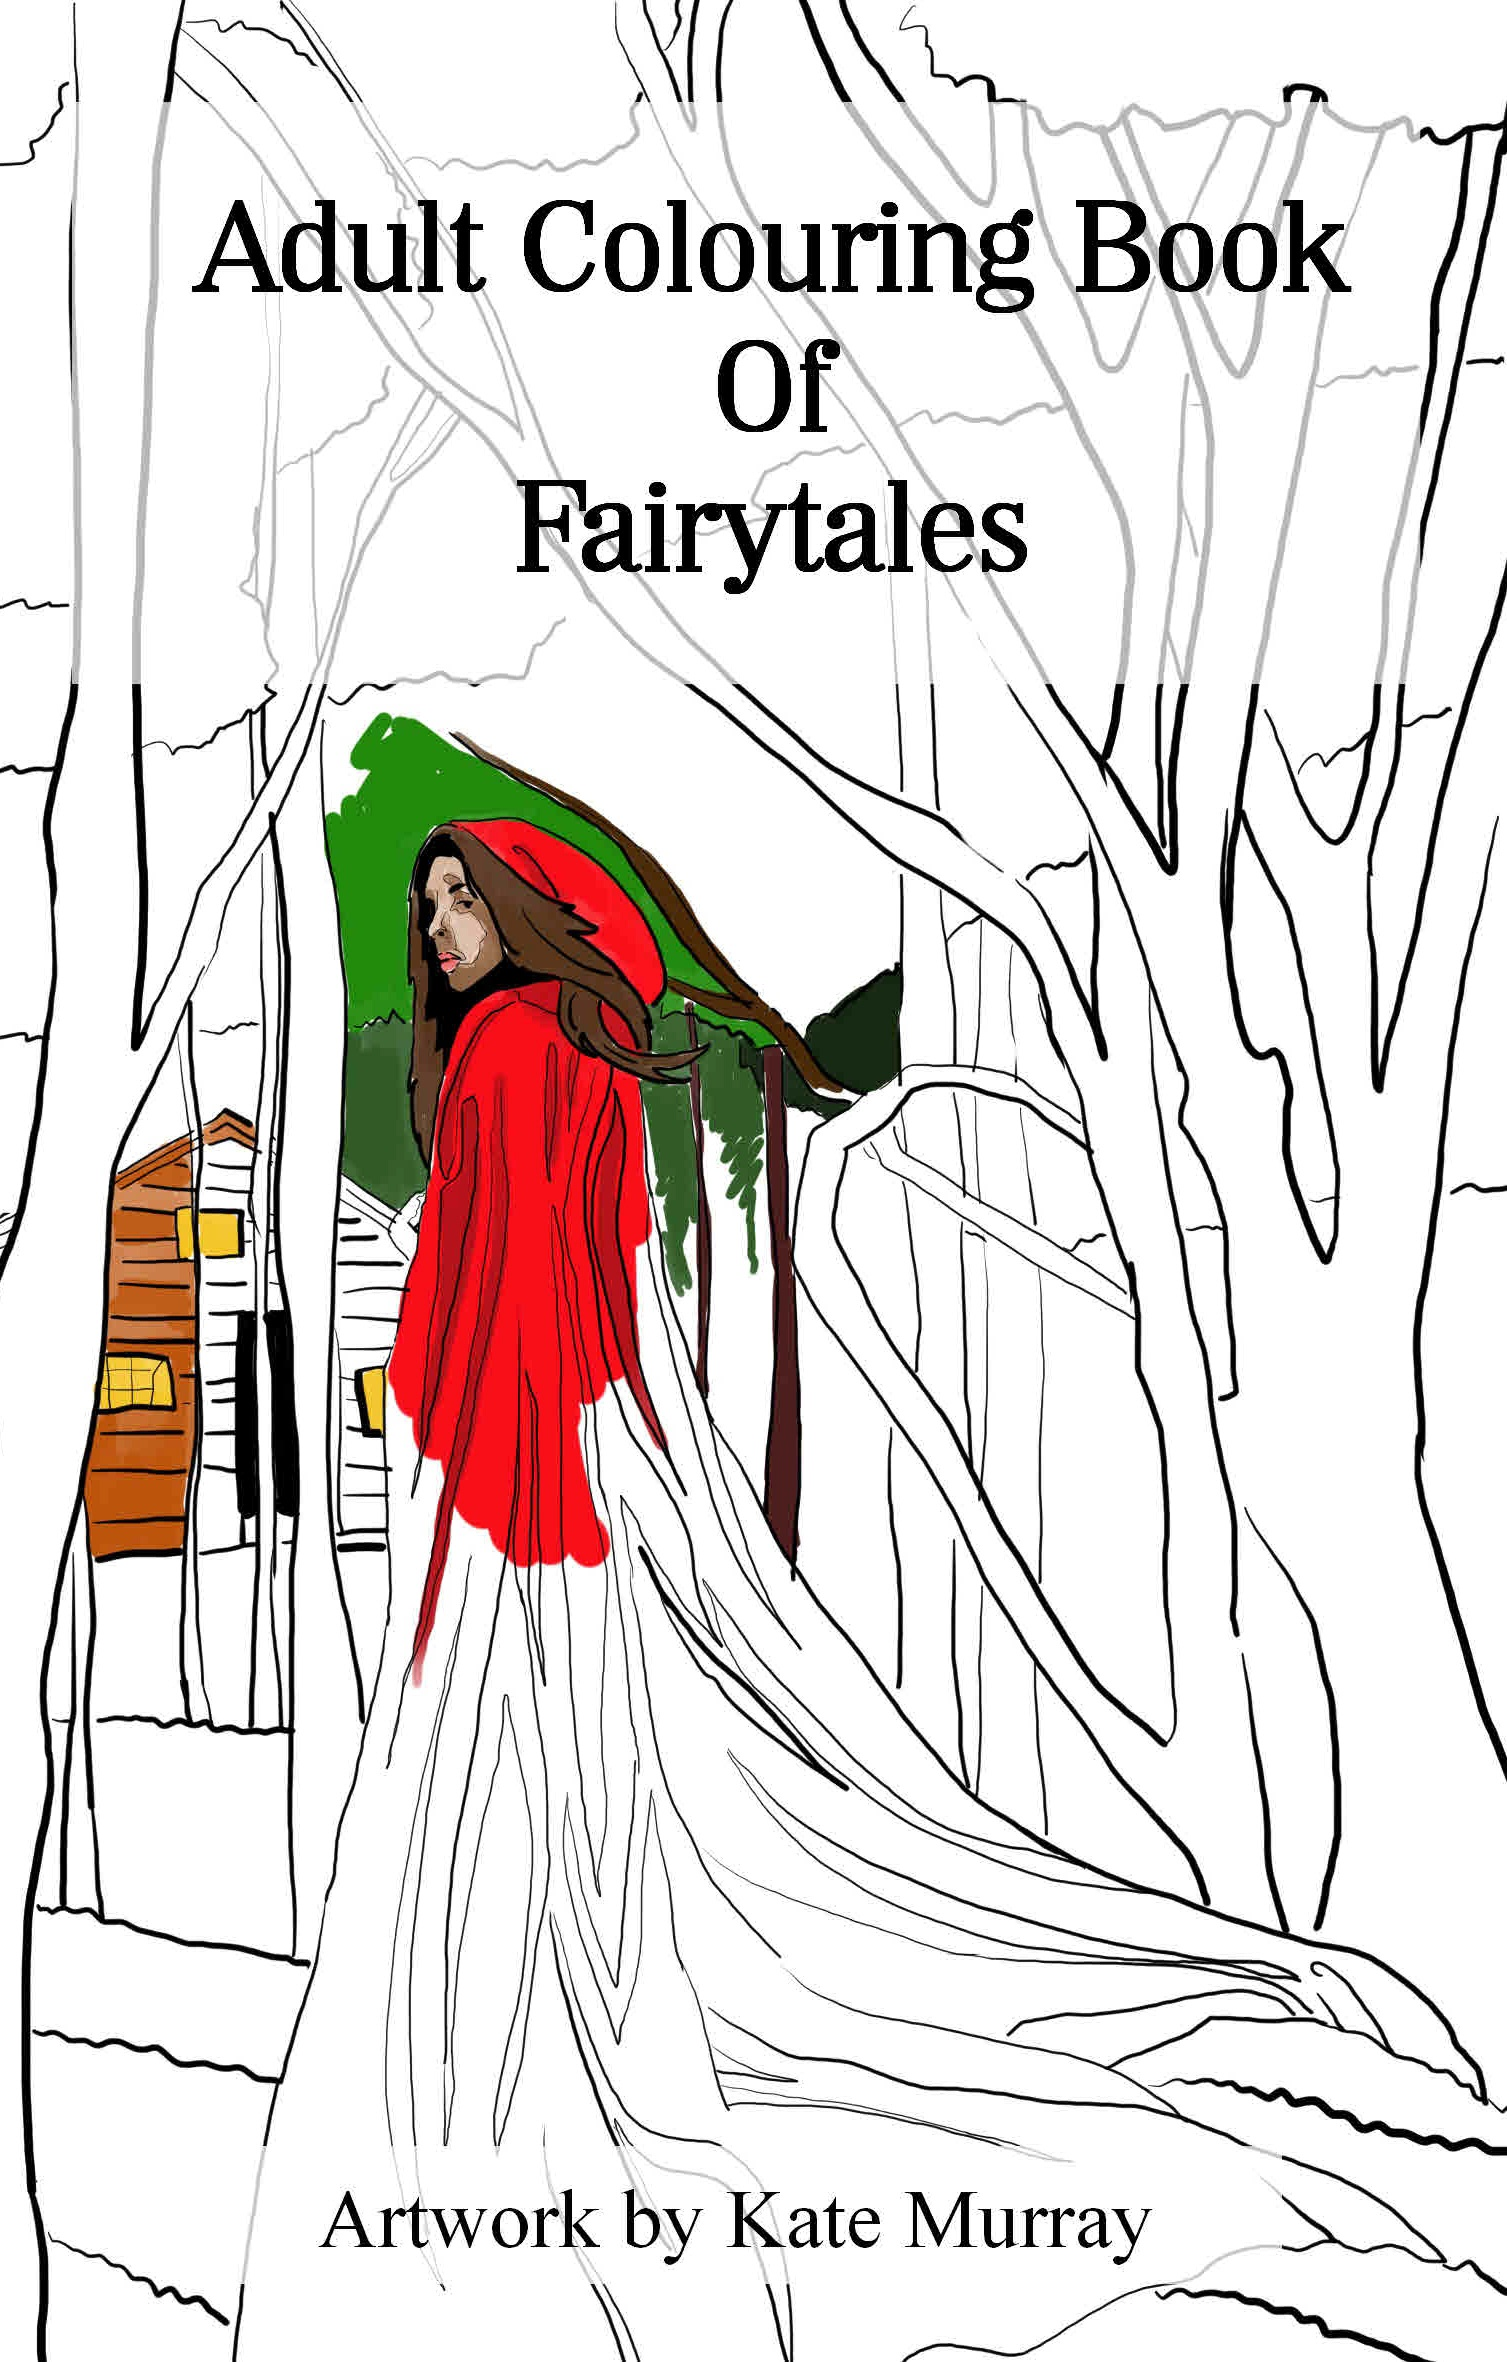 An Adult Colouring Book of Fairytales